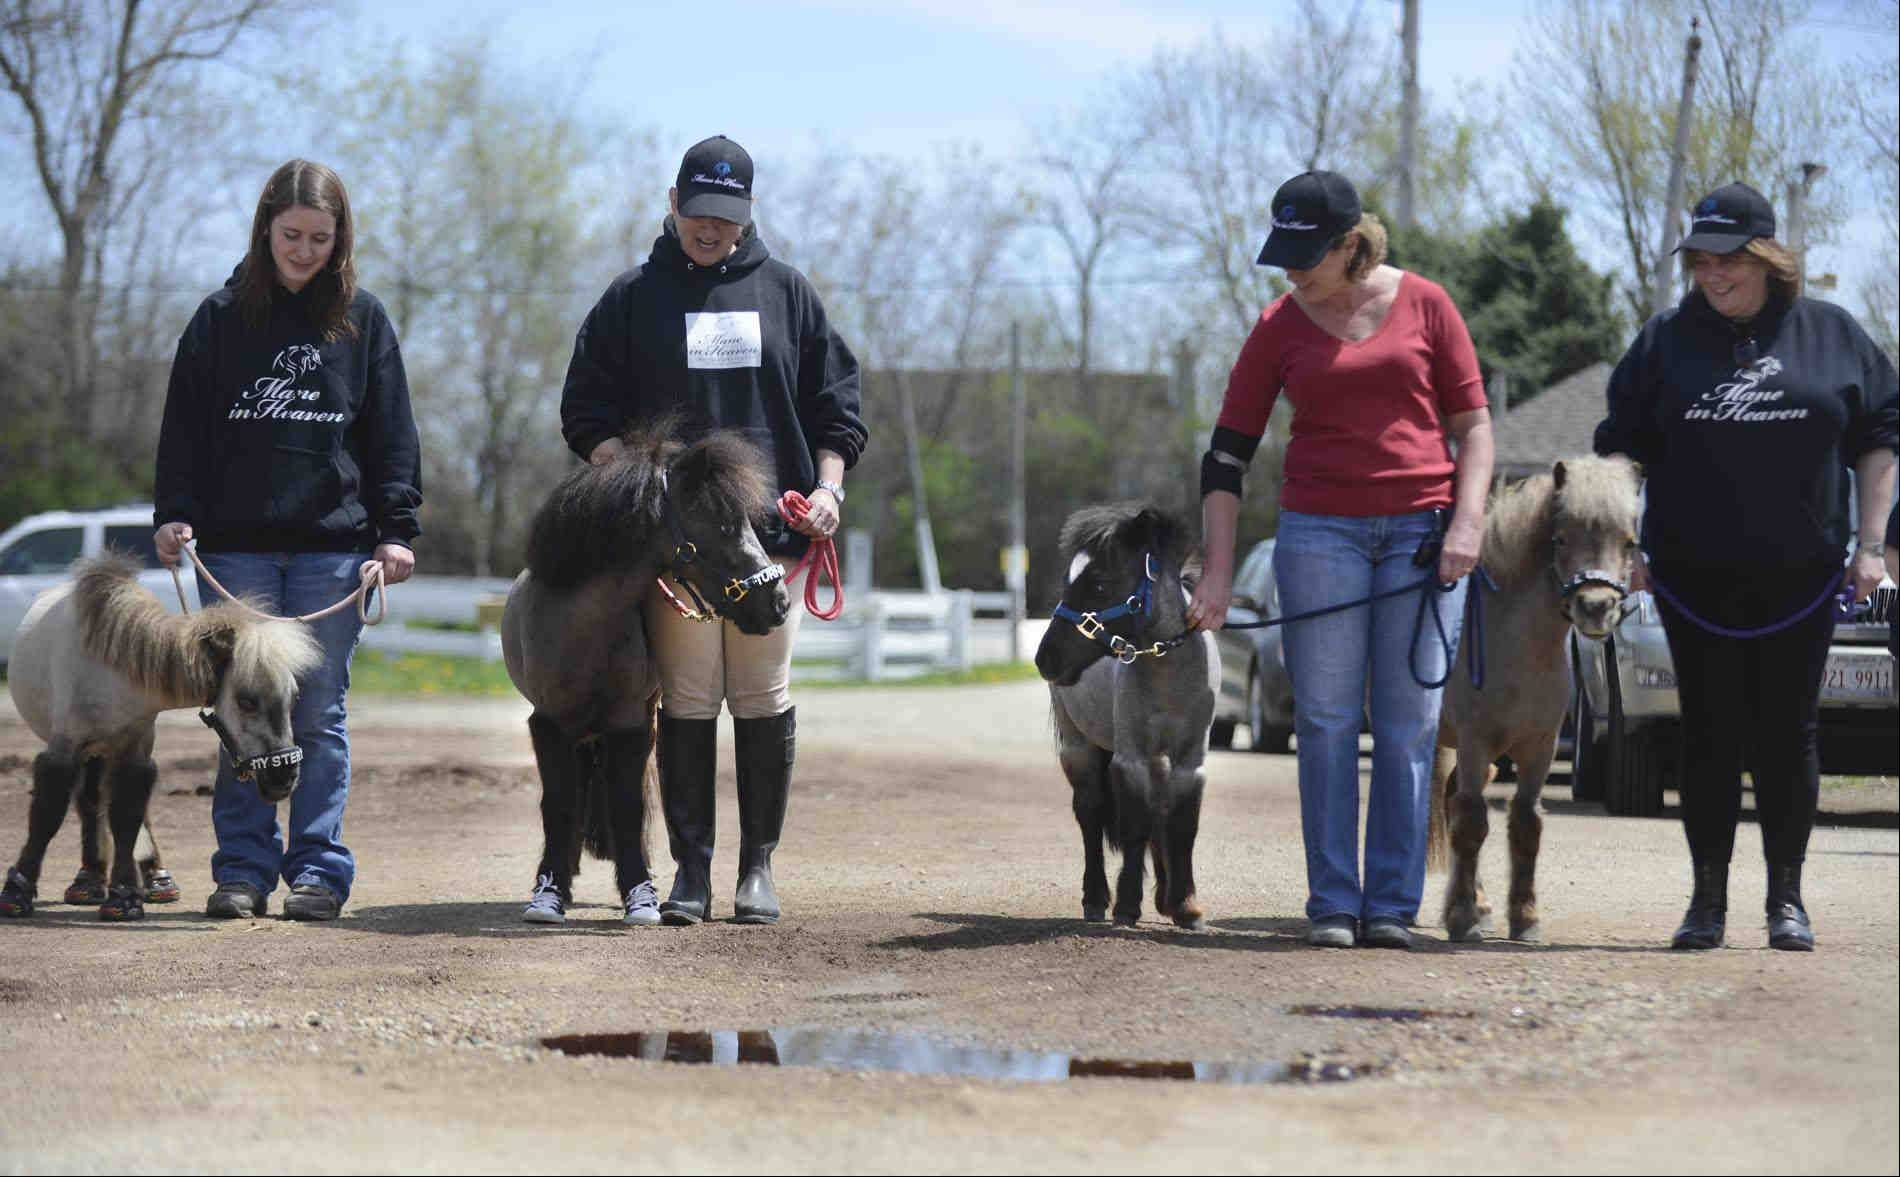 Moving Picture: Miniature horses serve as therapy animals